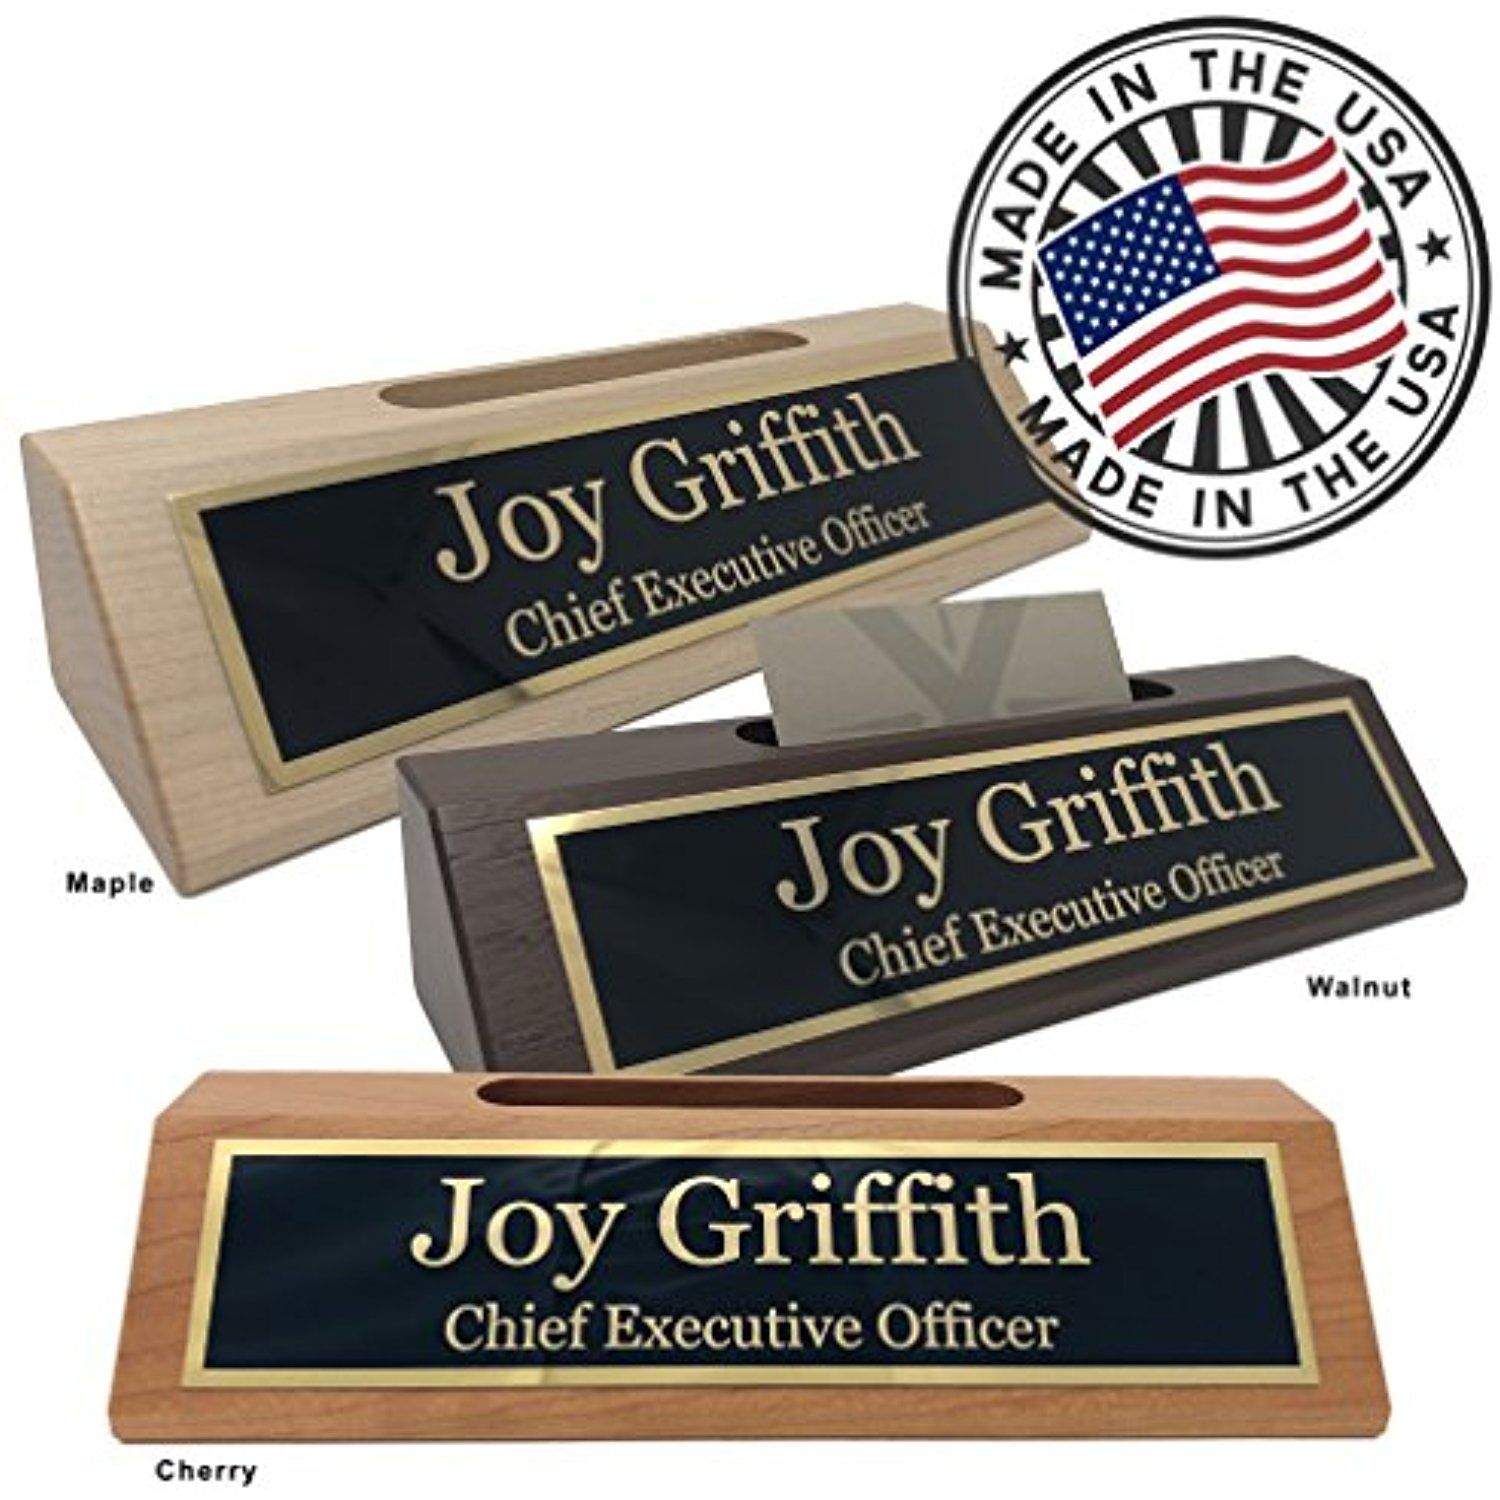 Personalized Business Desk Name Plate with Card Holder - Made in USA ...